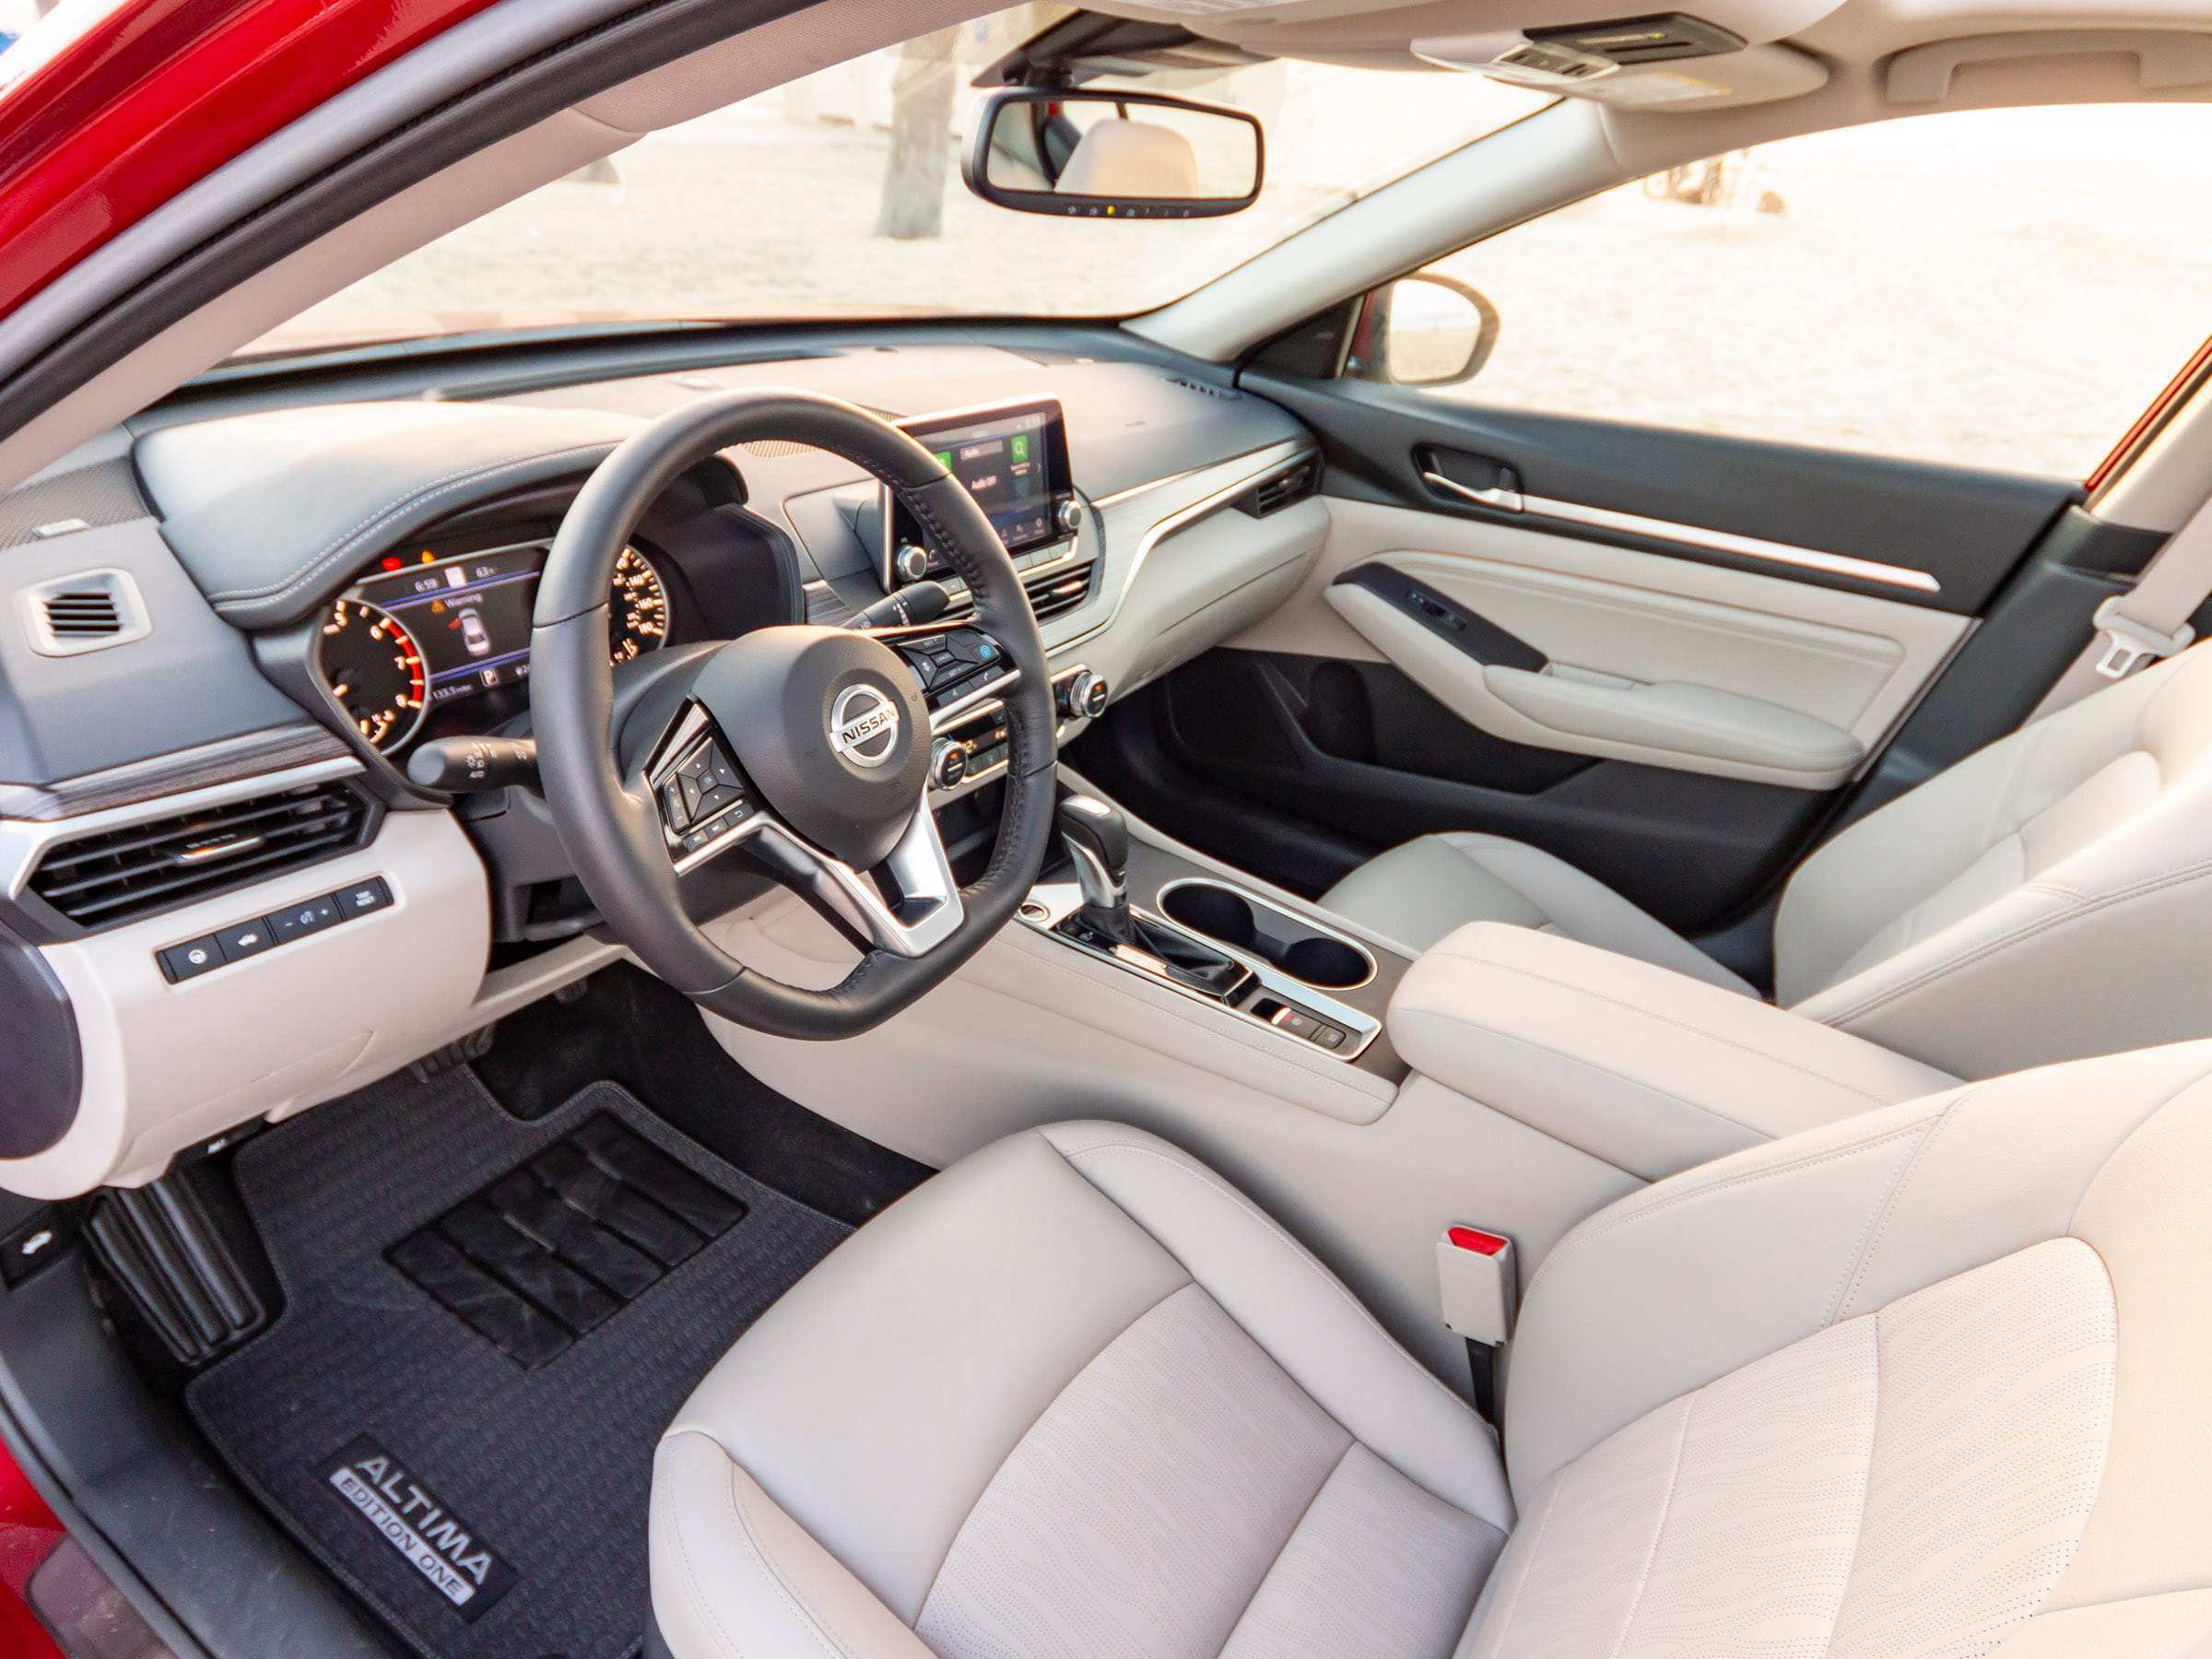 45 New 2019 Nissan Altima Interior Review